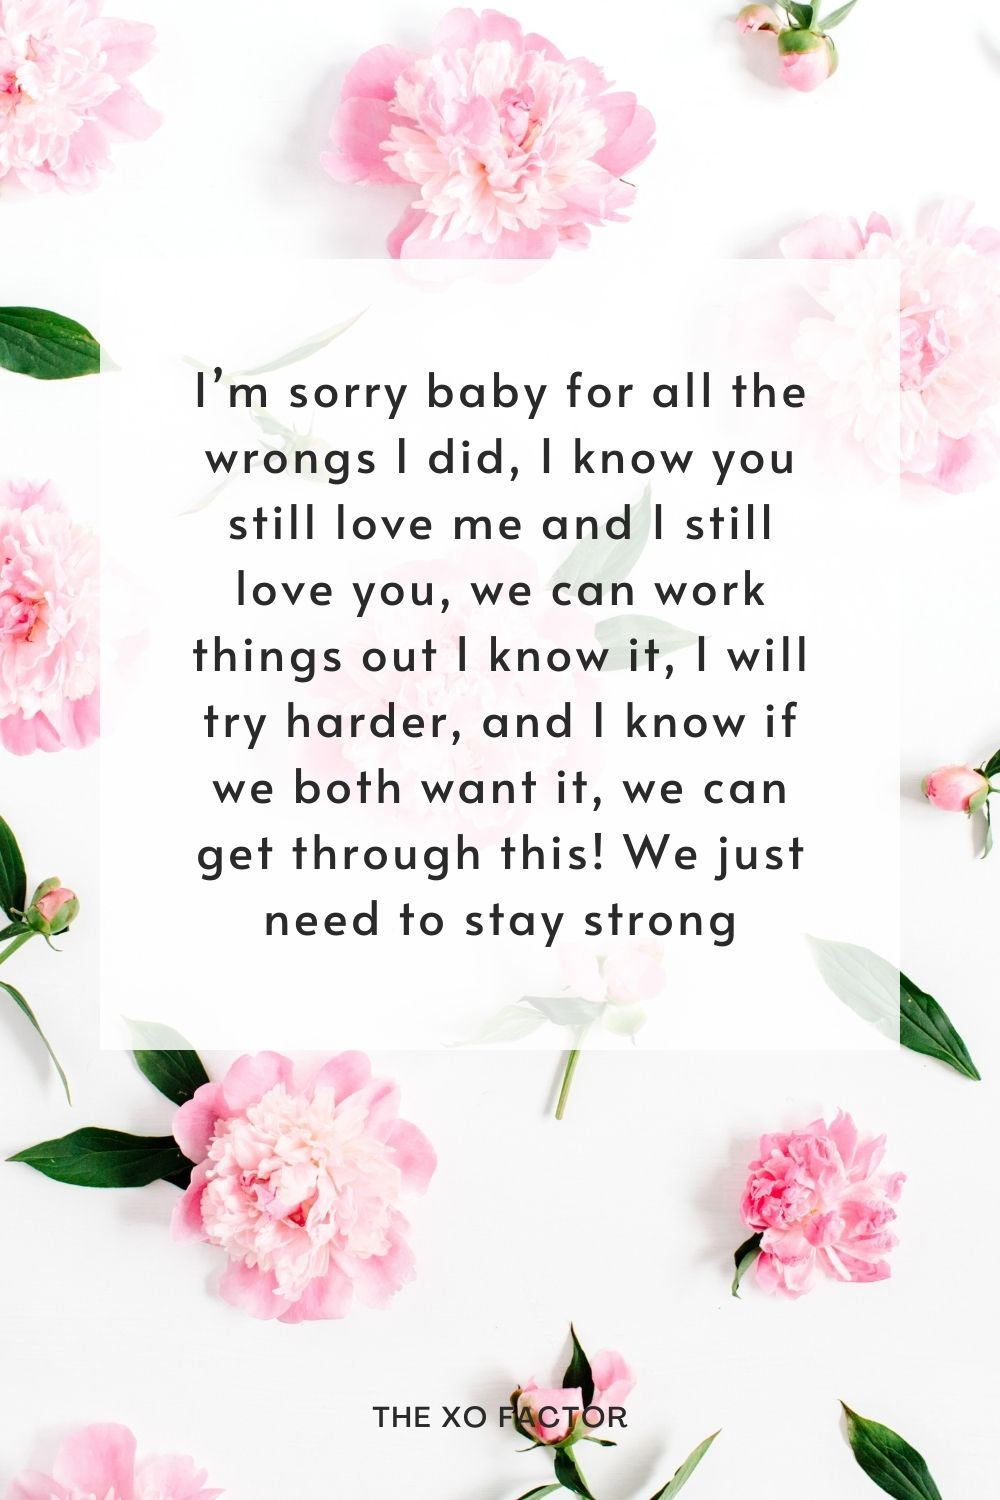 I'm sorry baby for all the wrongs I did, I know you still love me and I still love you, we can work things out I know it, I will try harder, and I know if we both want it, we can get through this! We just need to stay strong